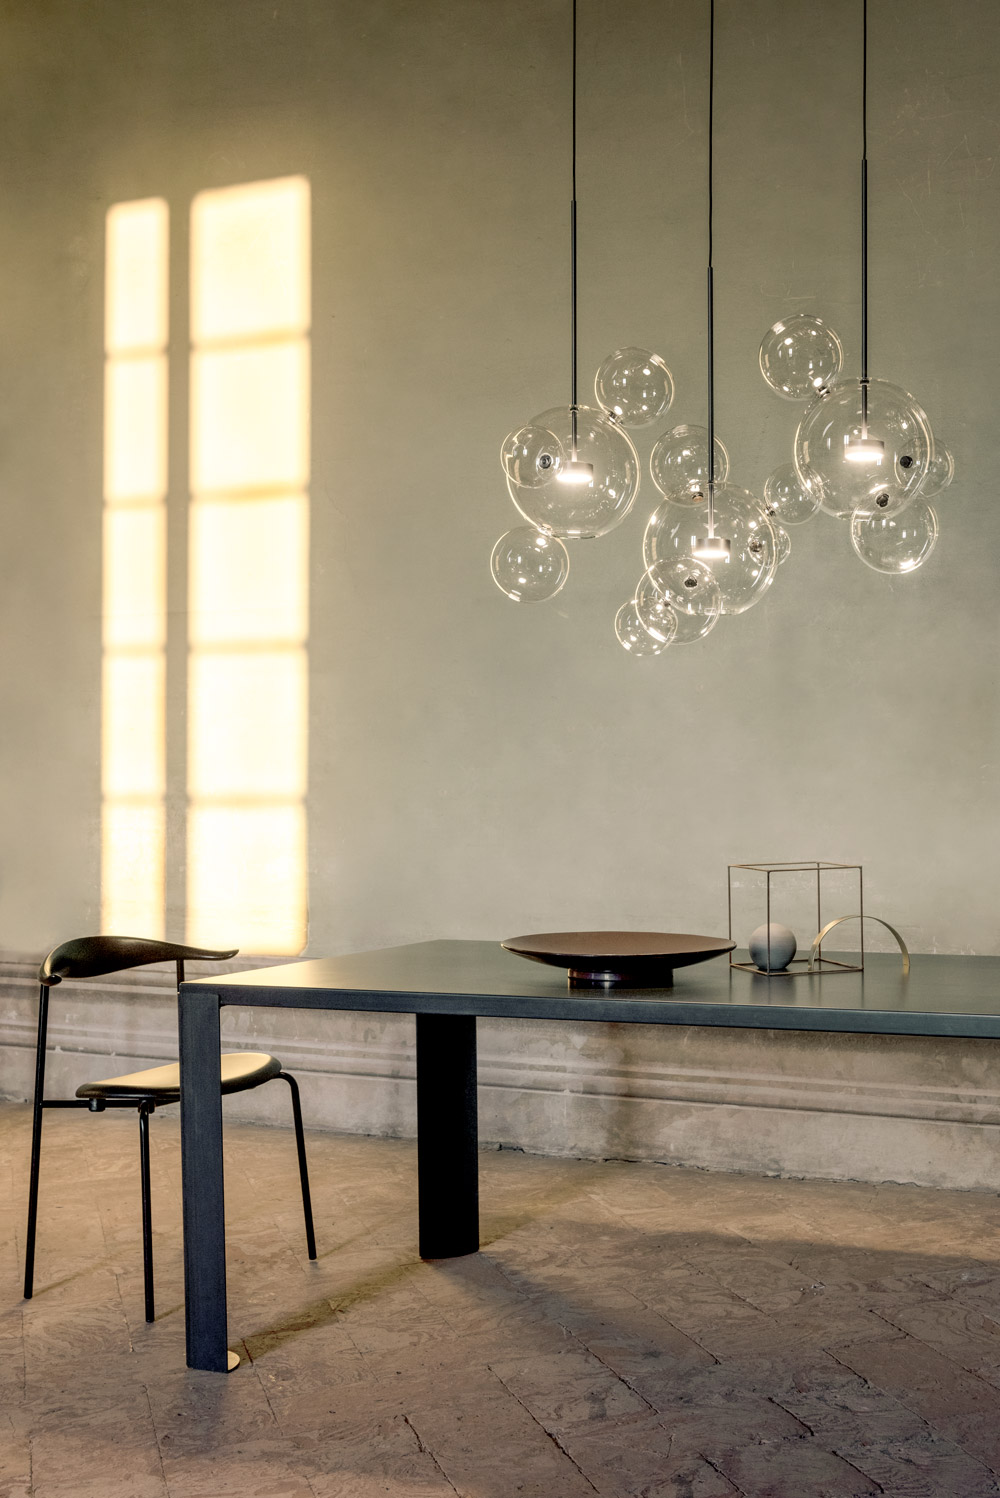 Giopato_coombes_Ph_Nathalie_Krag_2019_Bolle-Chandelier-14L_01_low.jpg